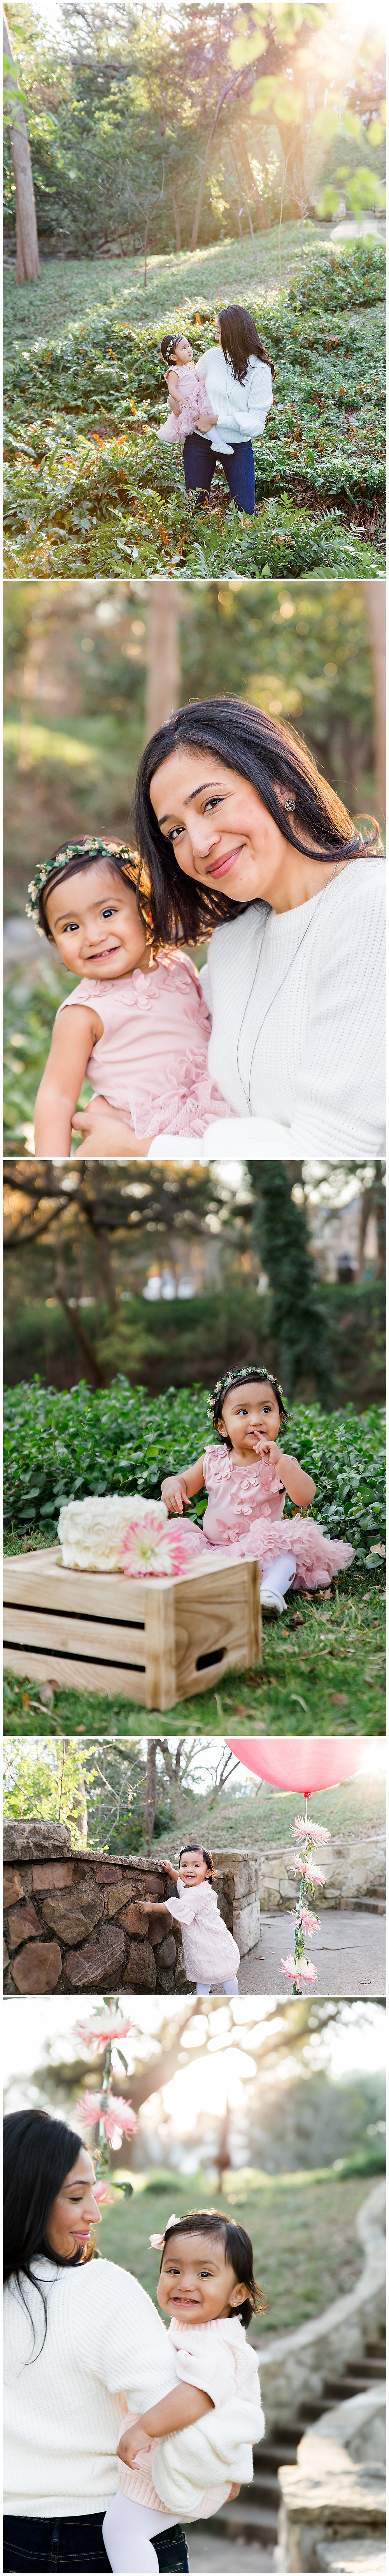 mother and daughter portrait ideas